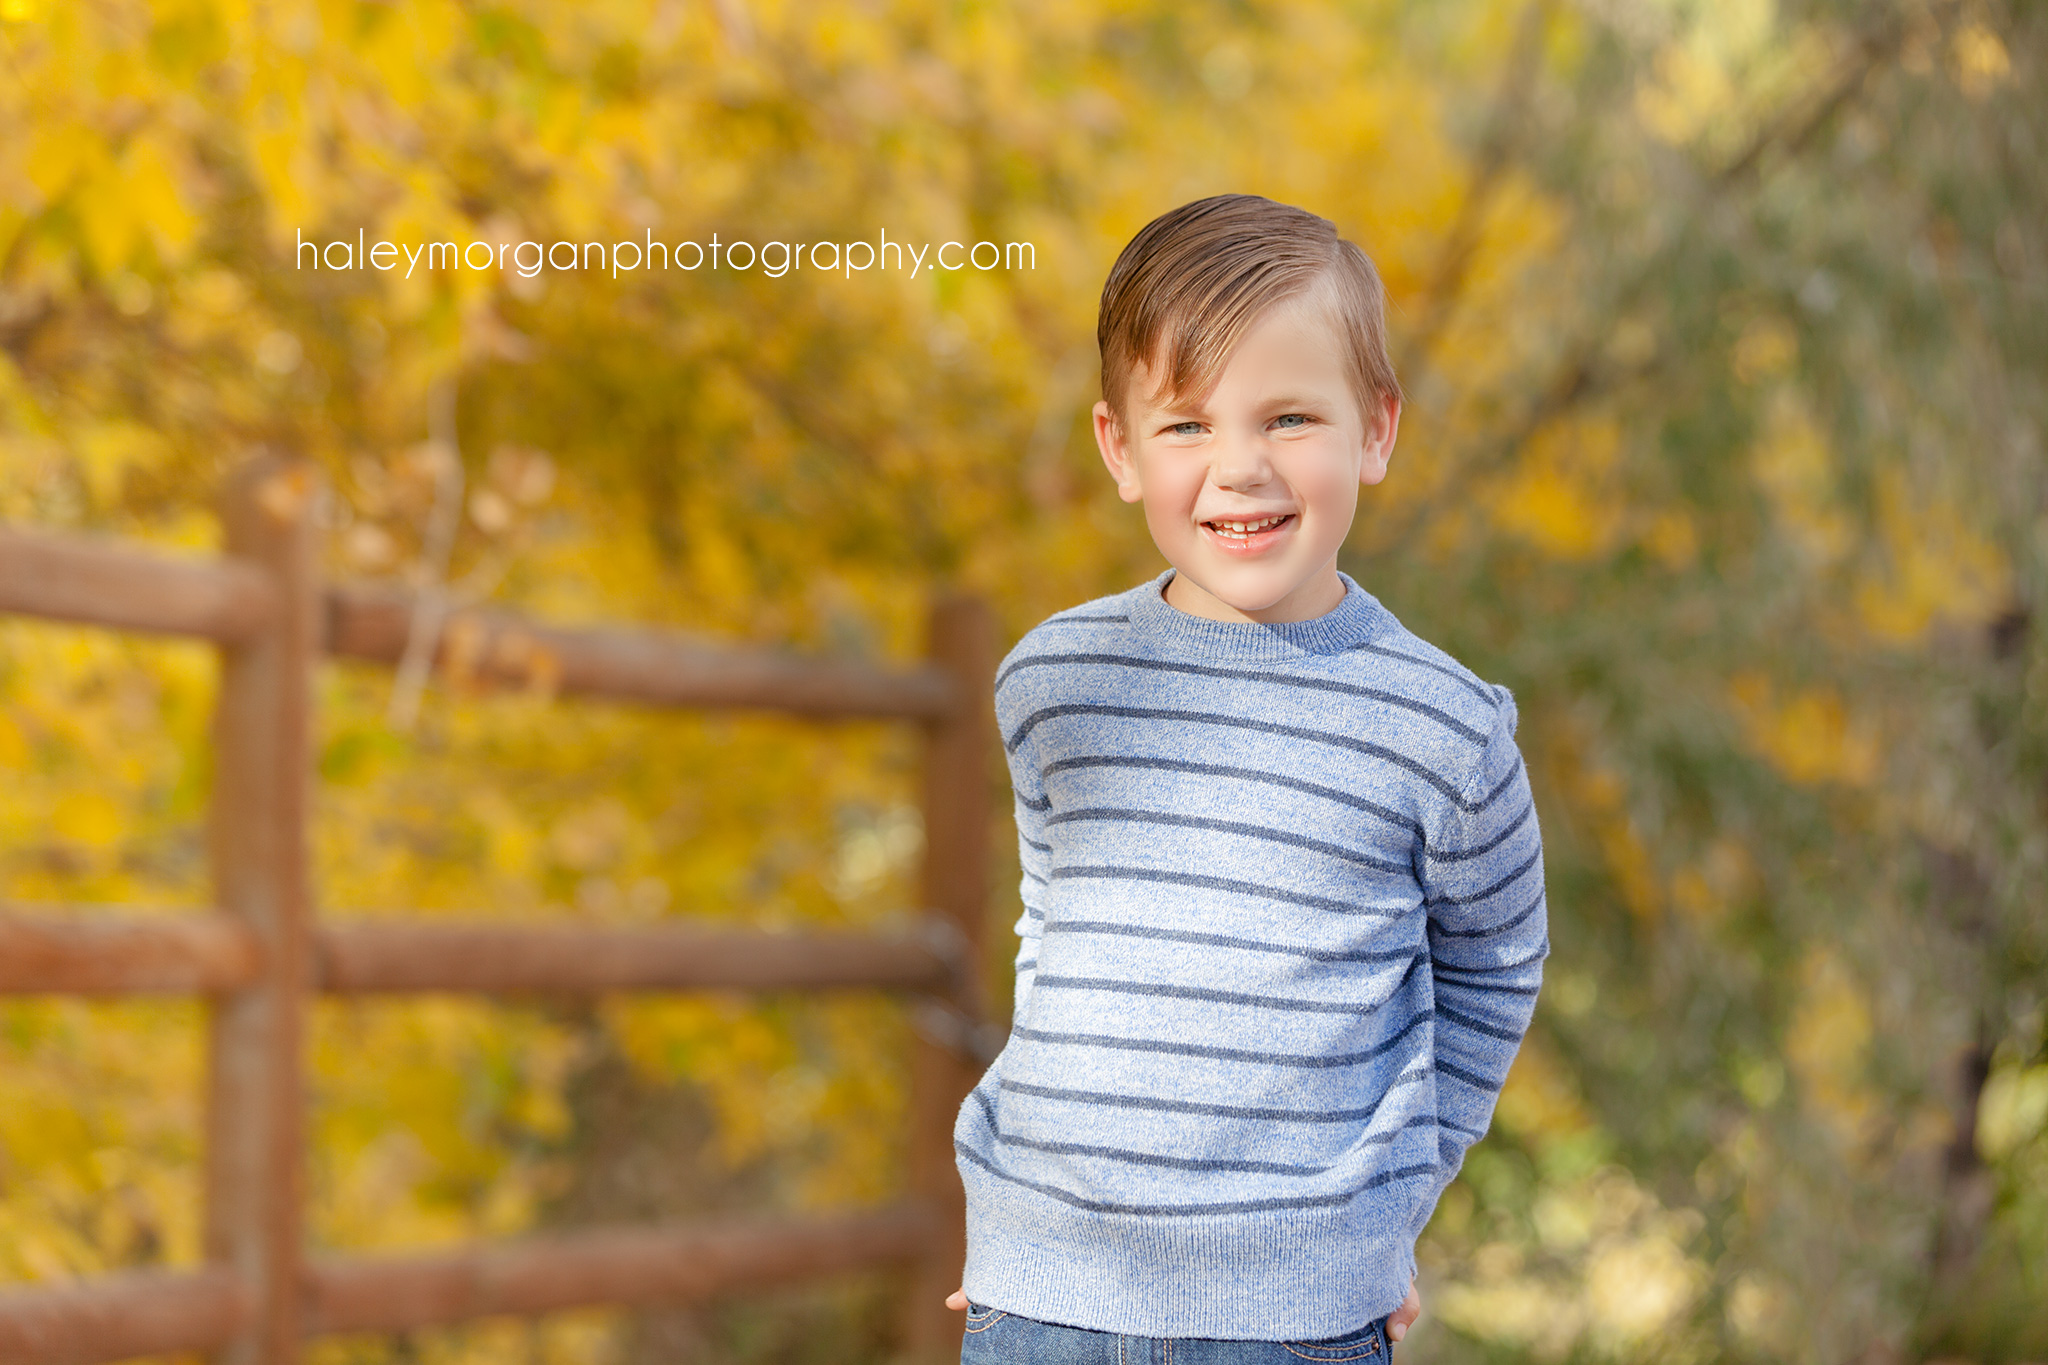 Denver Family Photographer, Clear Creek Trail, Clear Creek History Park, Golden Family Photographer, Denver Photographer, Golden Photographer, Haley Morgan Photography, The Golden Hotel